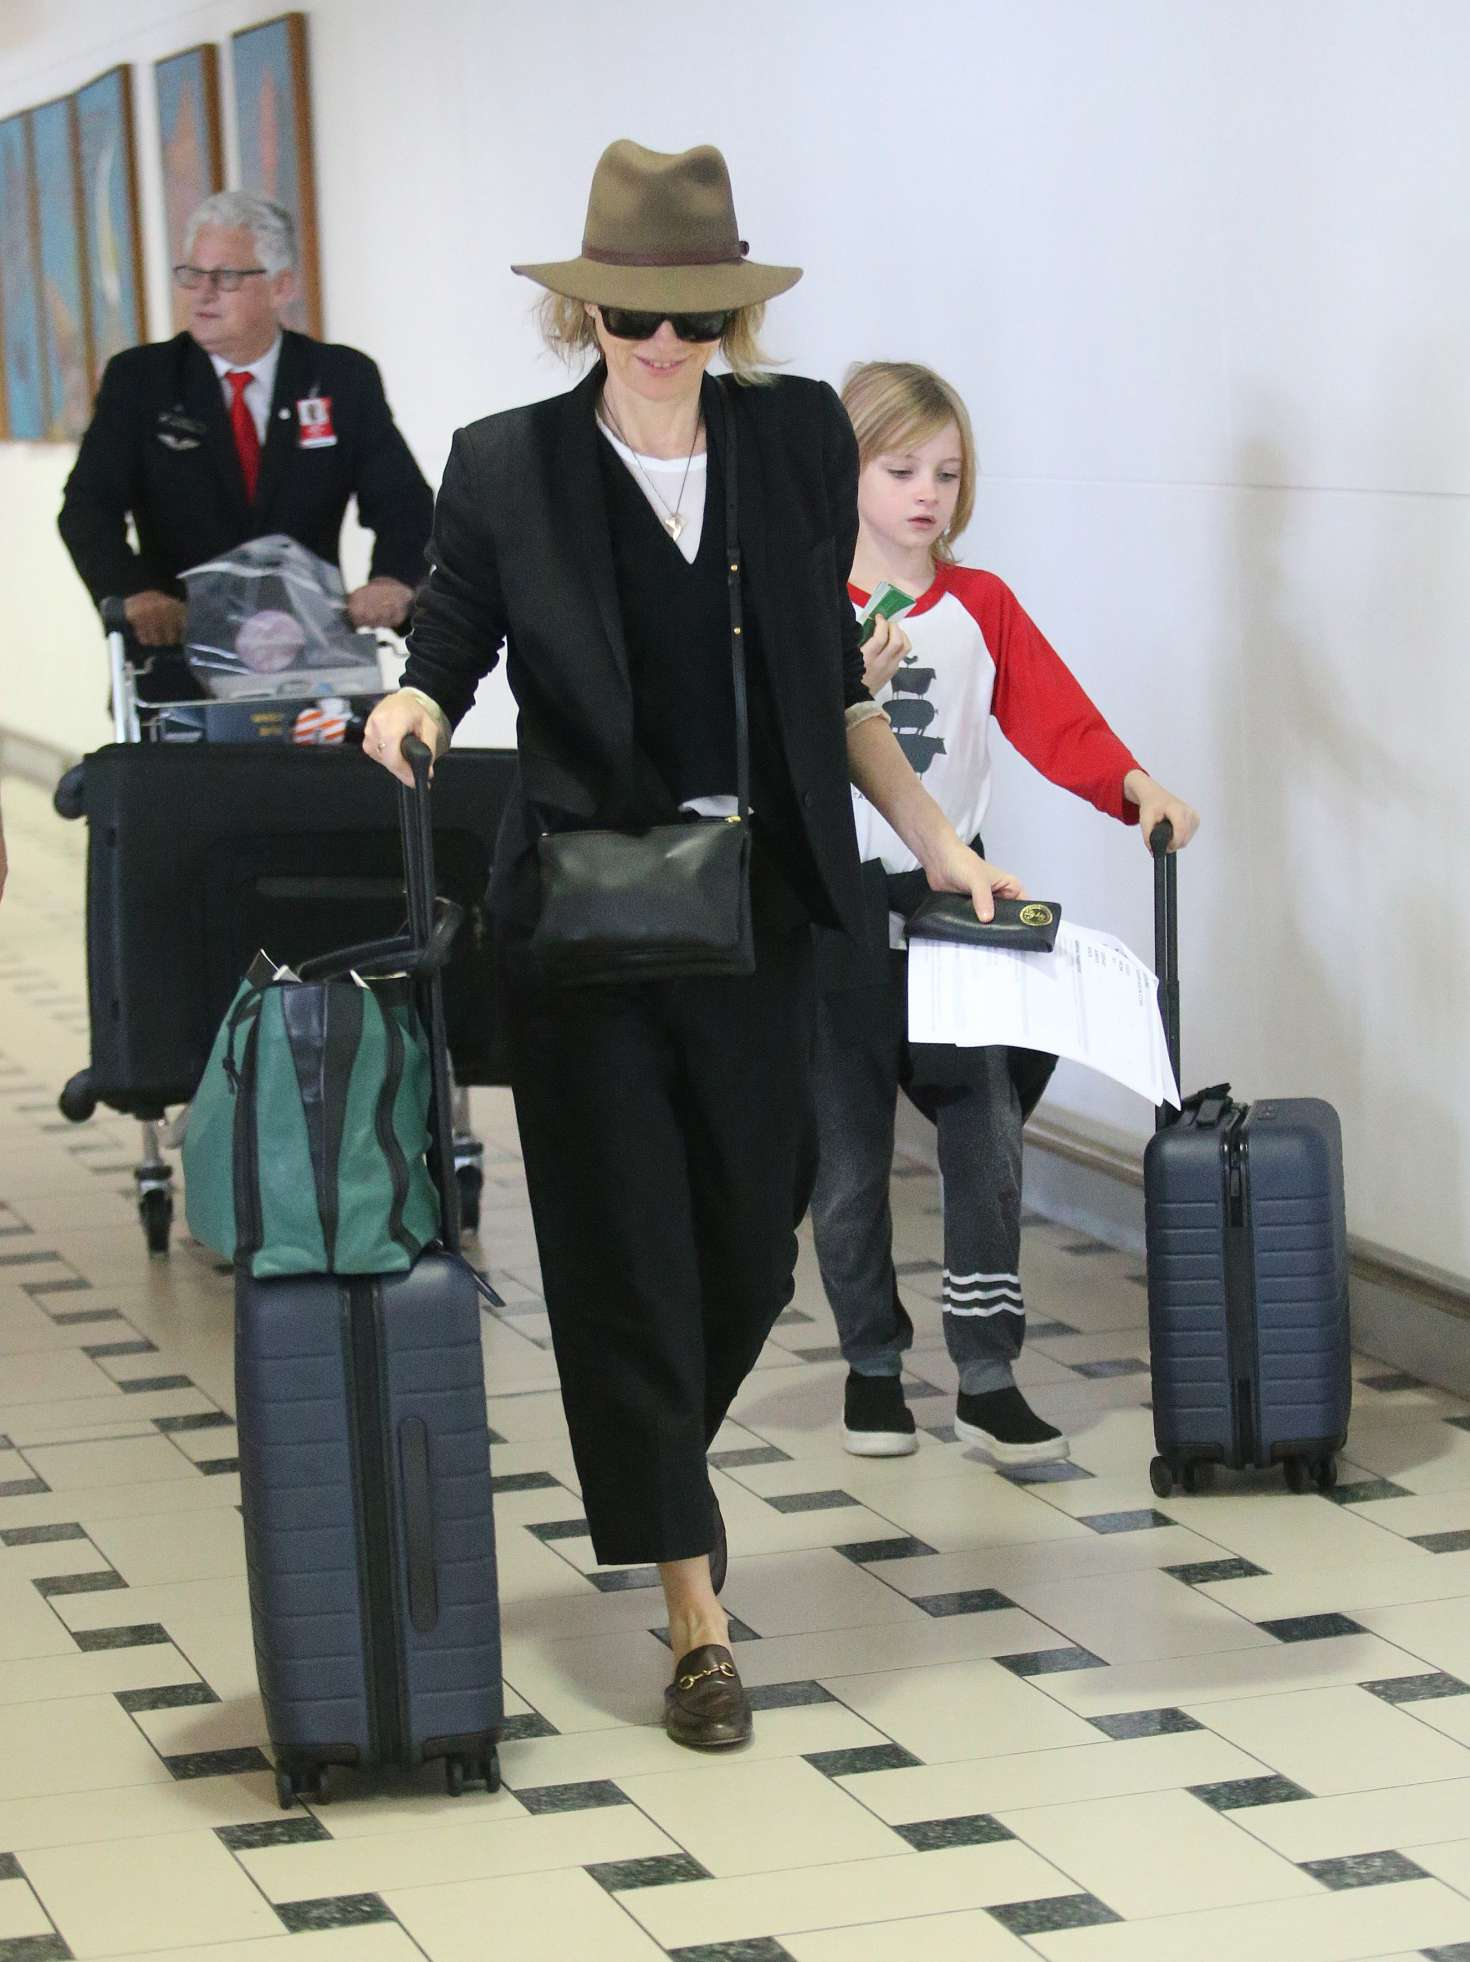 Naomi Watts - Arrives with her children for Christmas in Brisbane